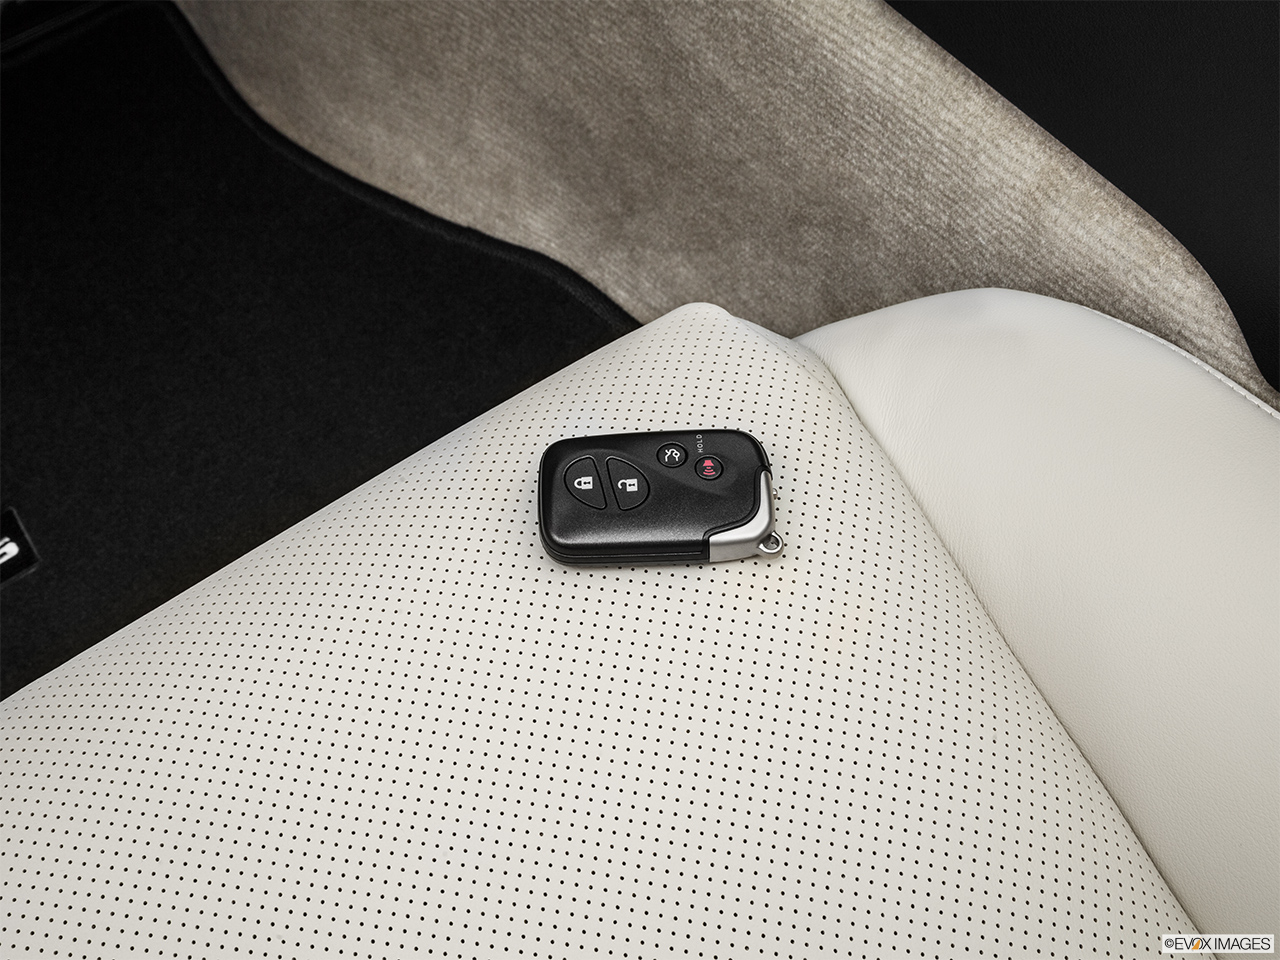 2015 Lexus IS C IS 350 Key fob on driver's seat.